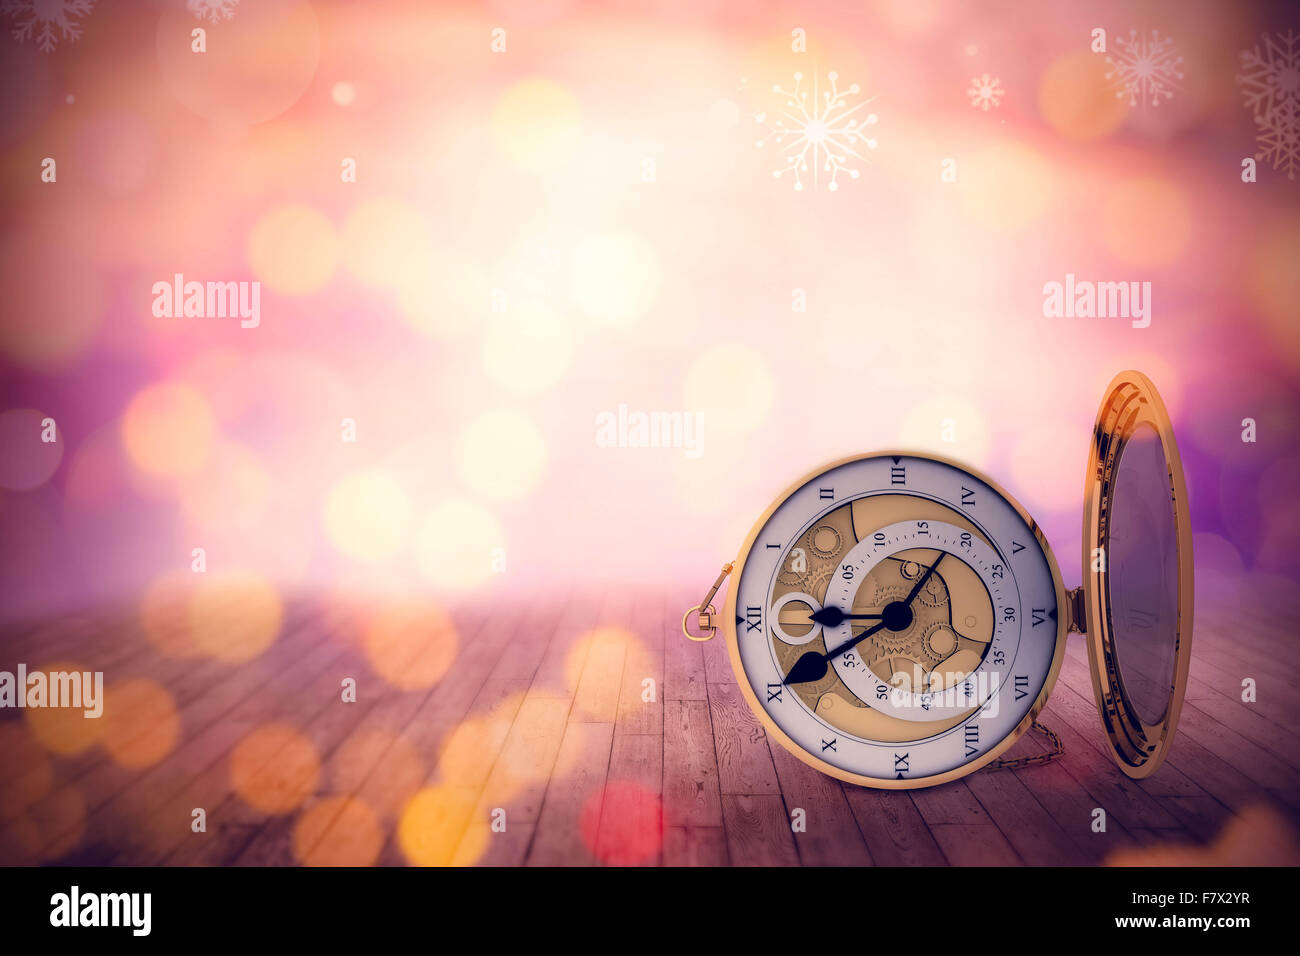 Composite image of retro styled pocket clock with mirror - Stock Image